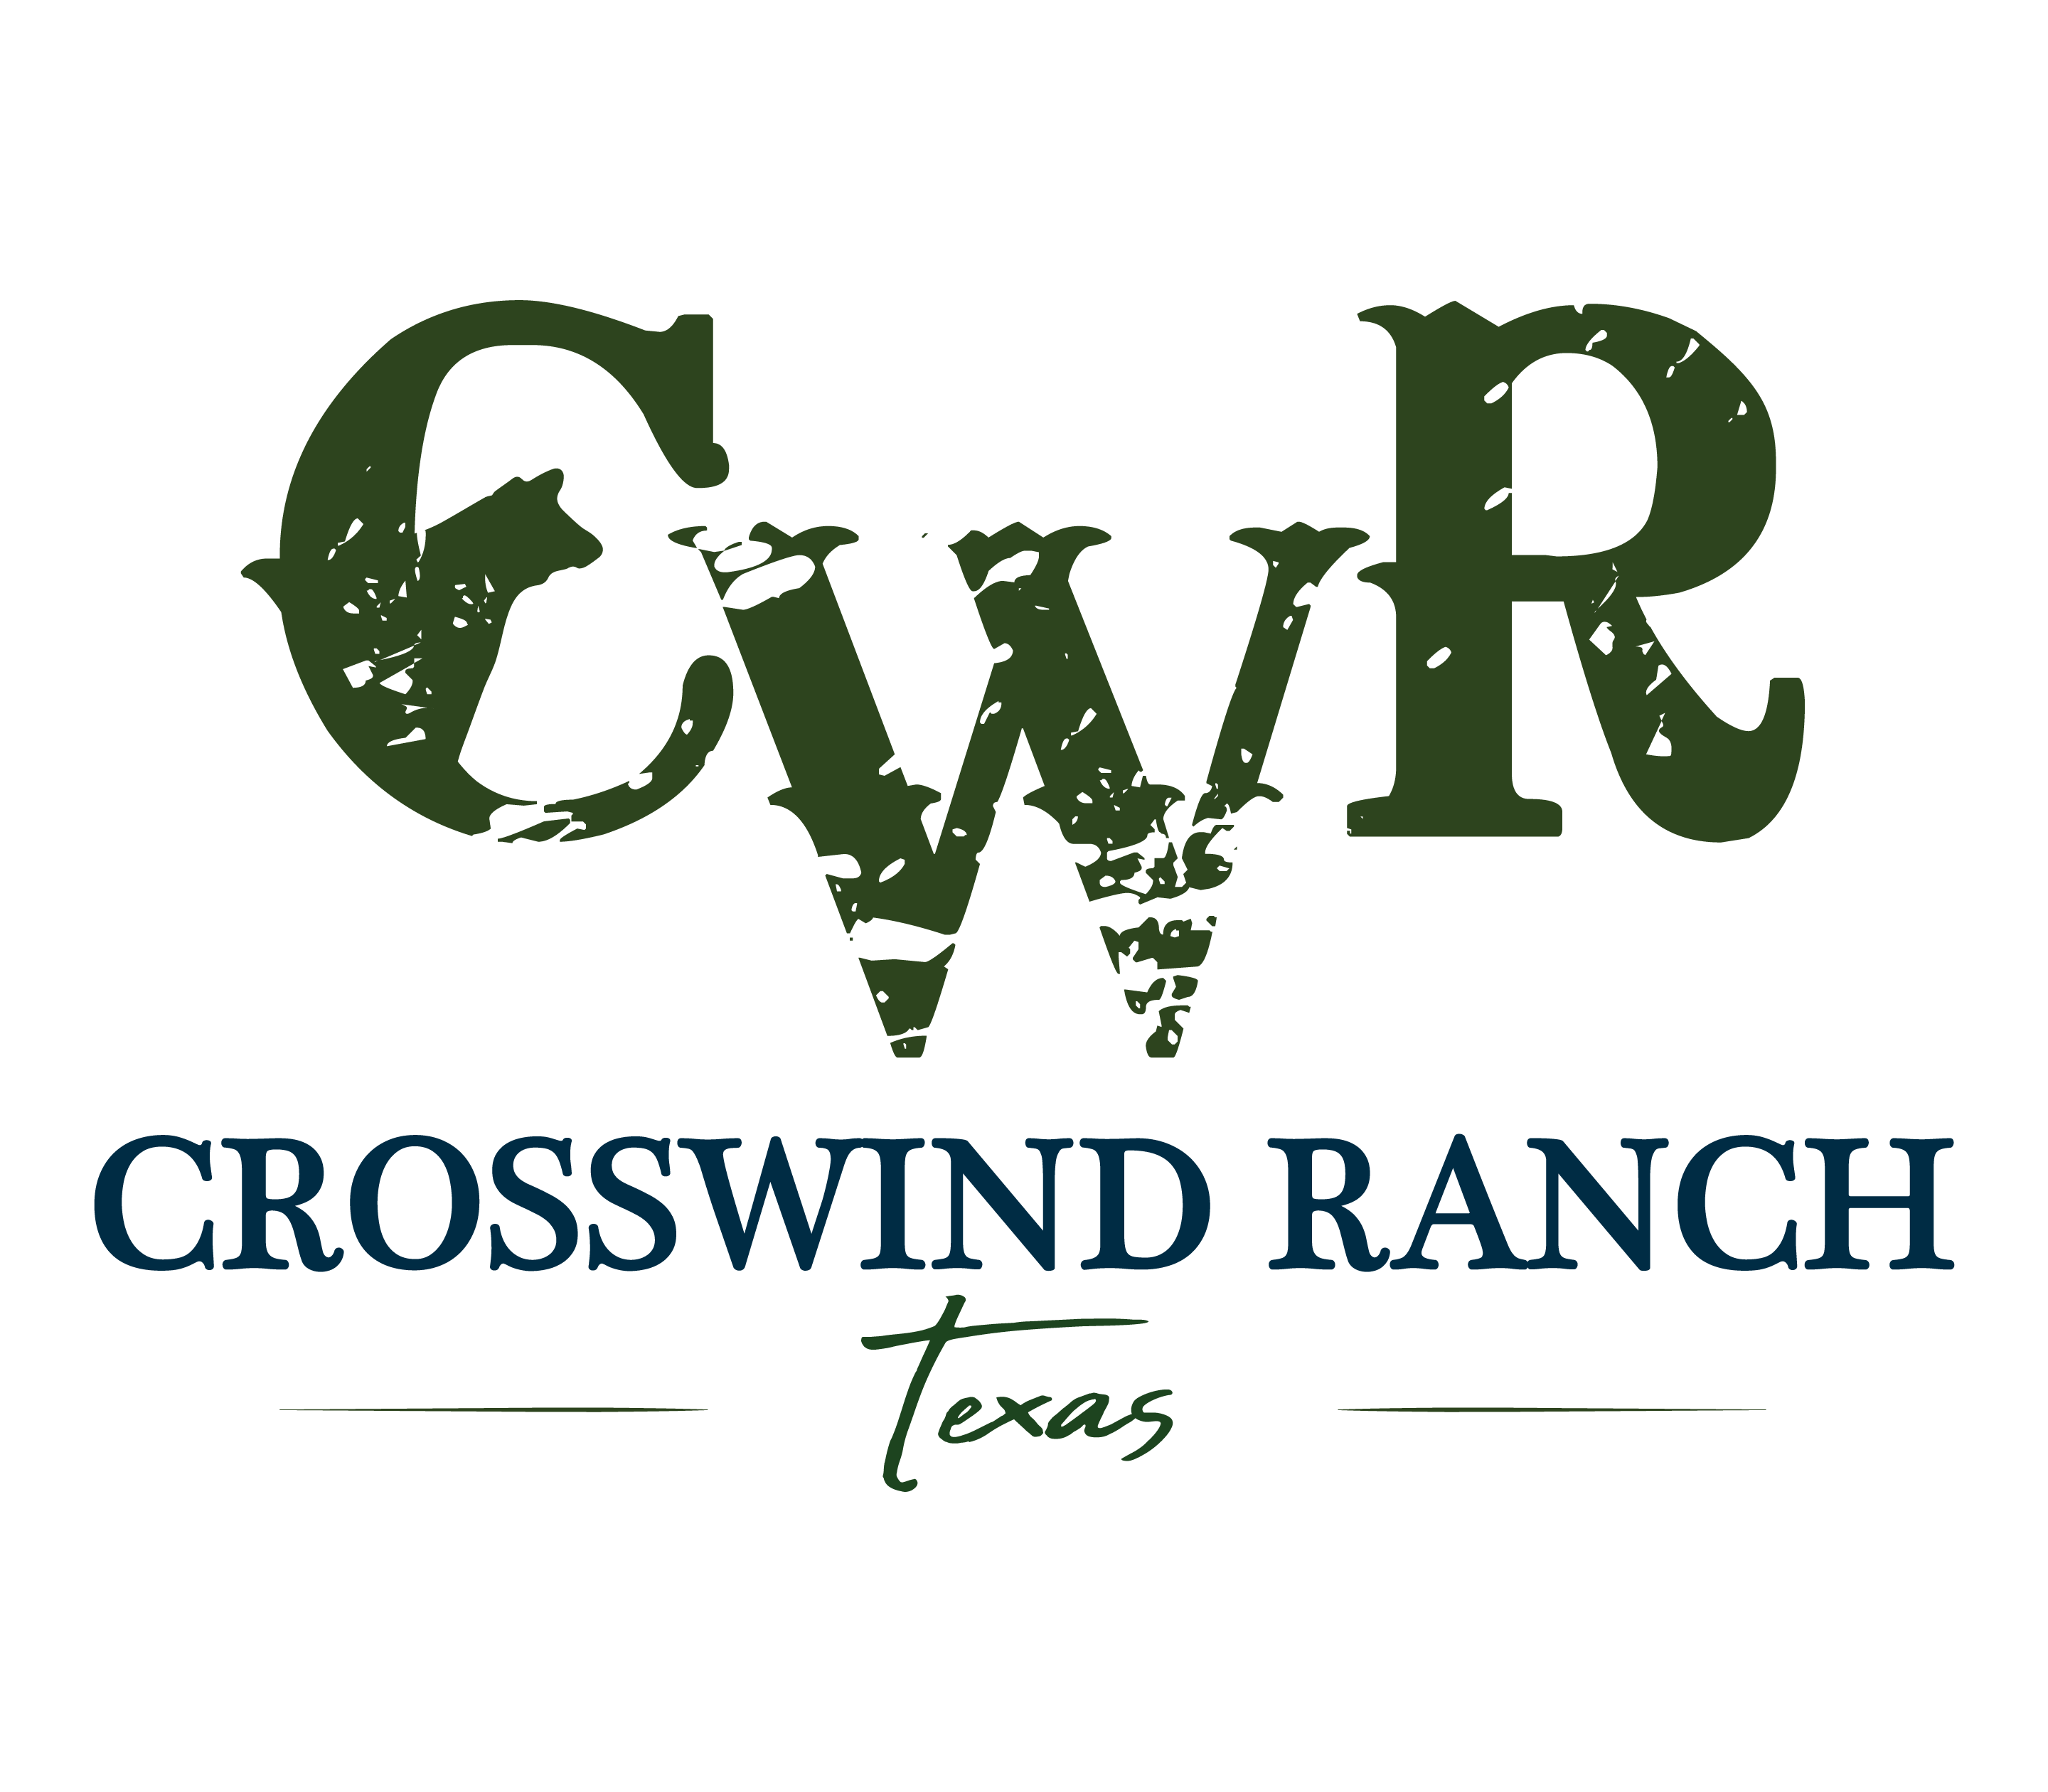 Crosswind Ranch logo PNG